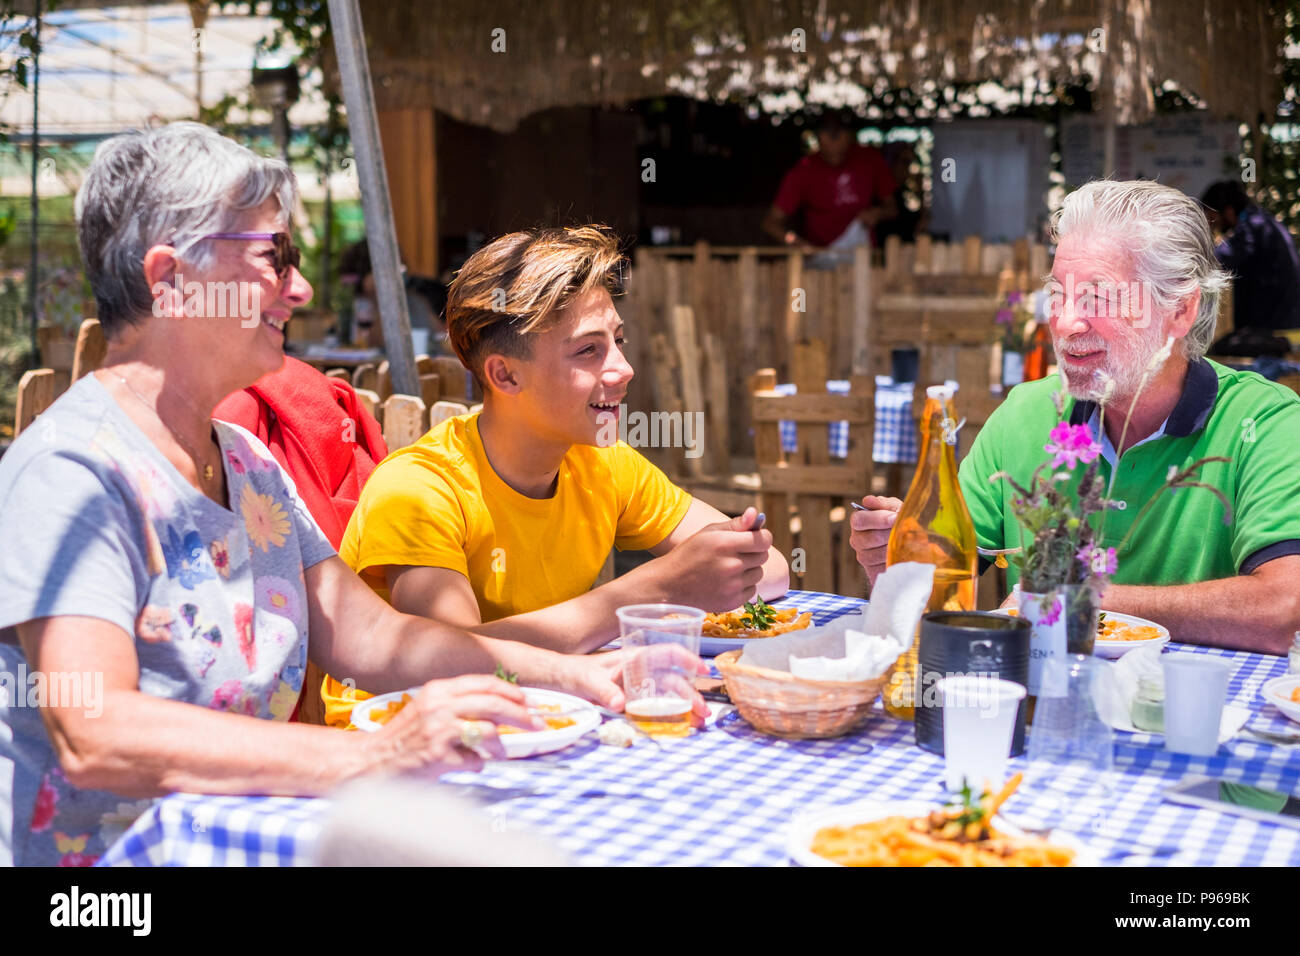 family caucasian people with grandmother grandfather grandson eating together in alternative natural place restaurant enjoying the meal and the vegeta - Stock Image